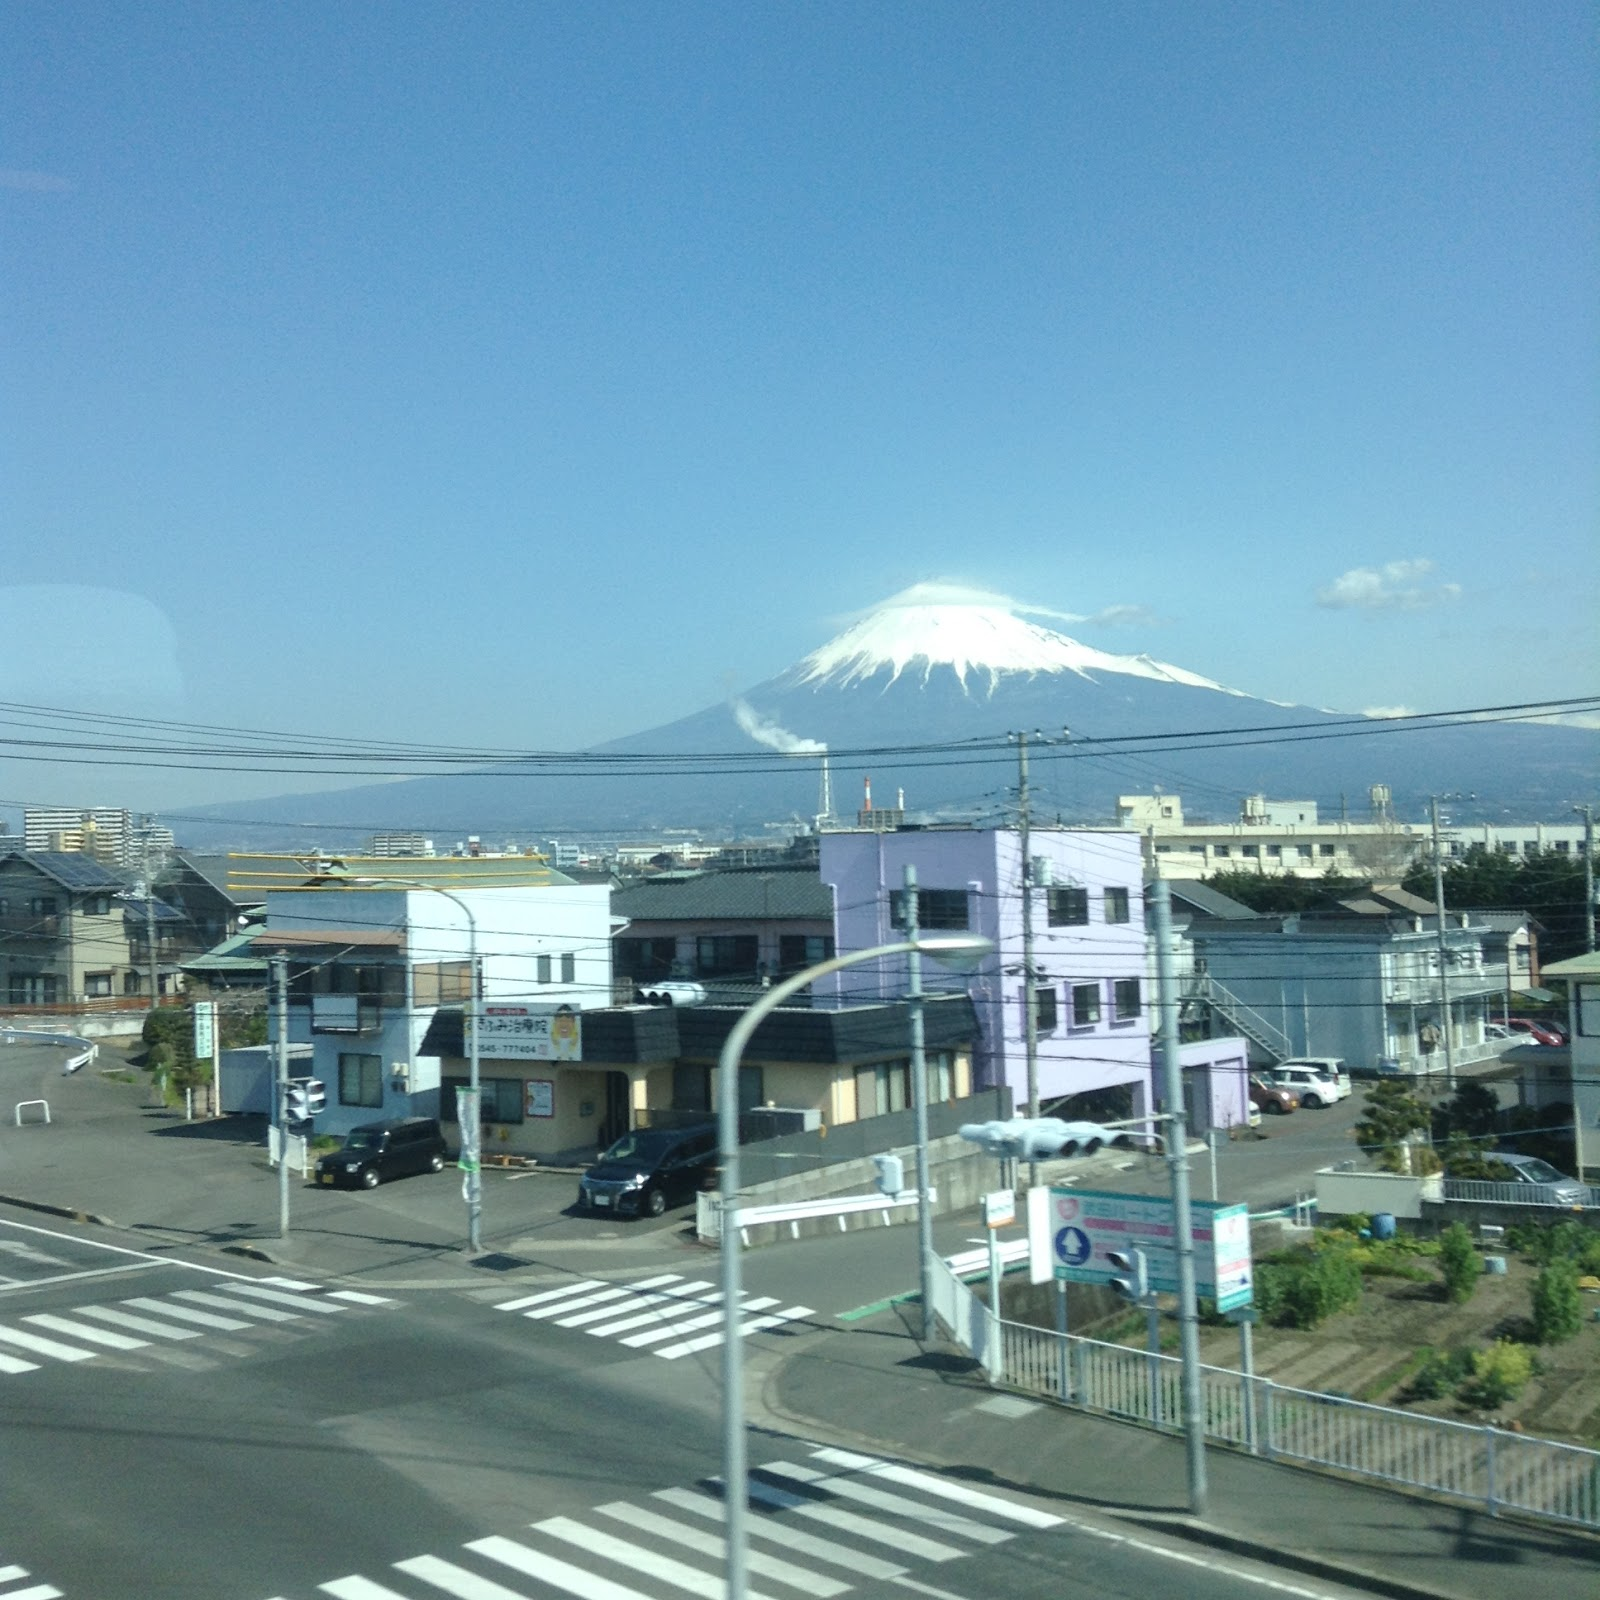 Mount Fuji as seen from the Shinkansen window